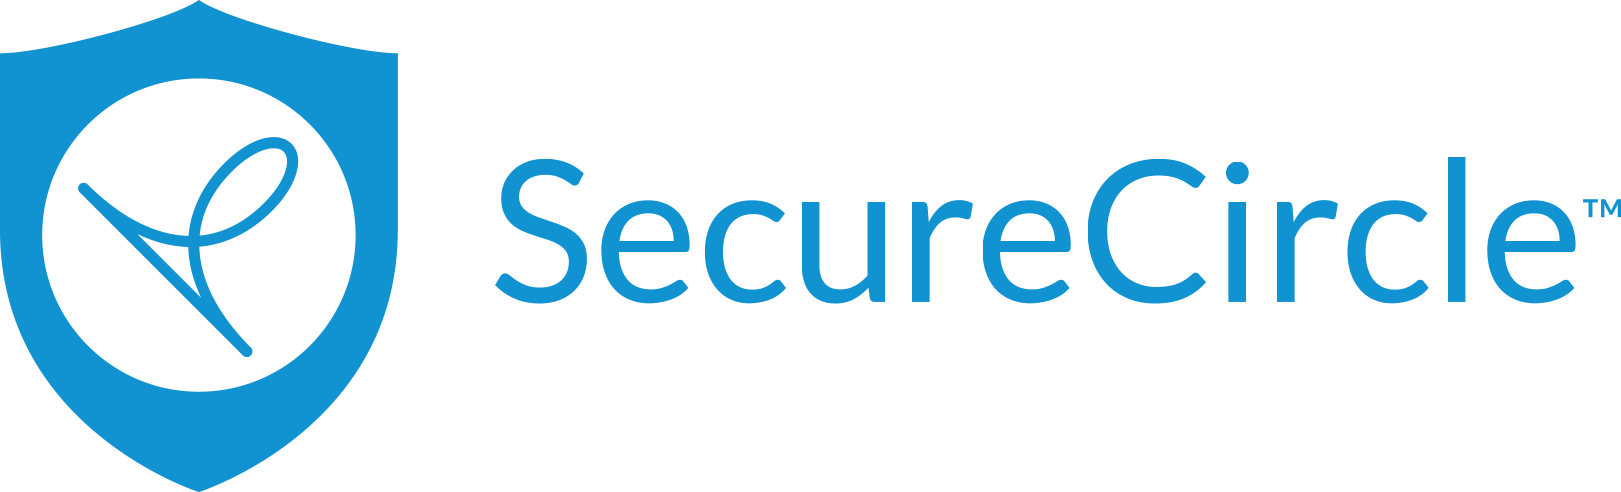 SecureCircleLogo